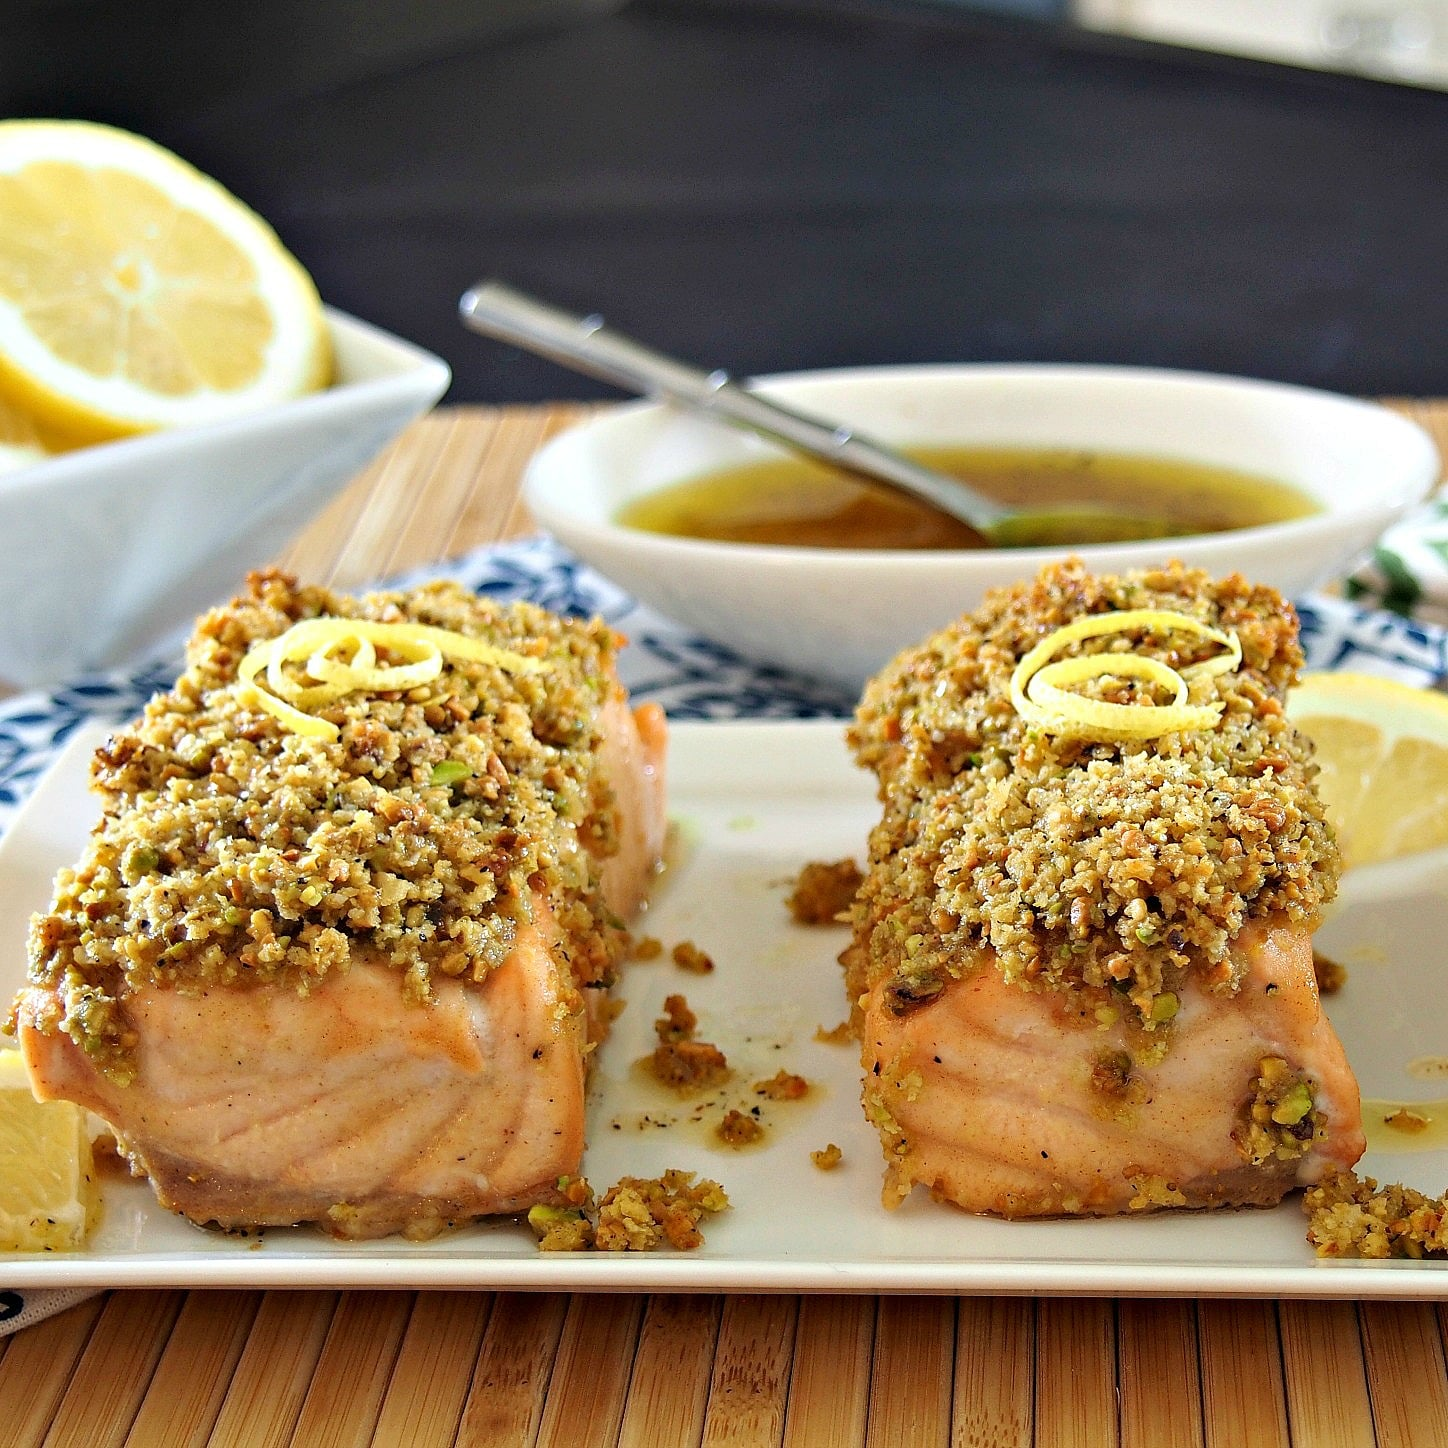 Salmon topped with a honey, lemon glaze then topped with a mixture of pistachios & panko crumbs.  So delicious and satisfying.